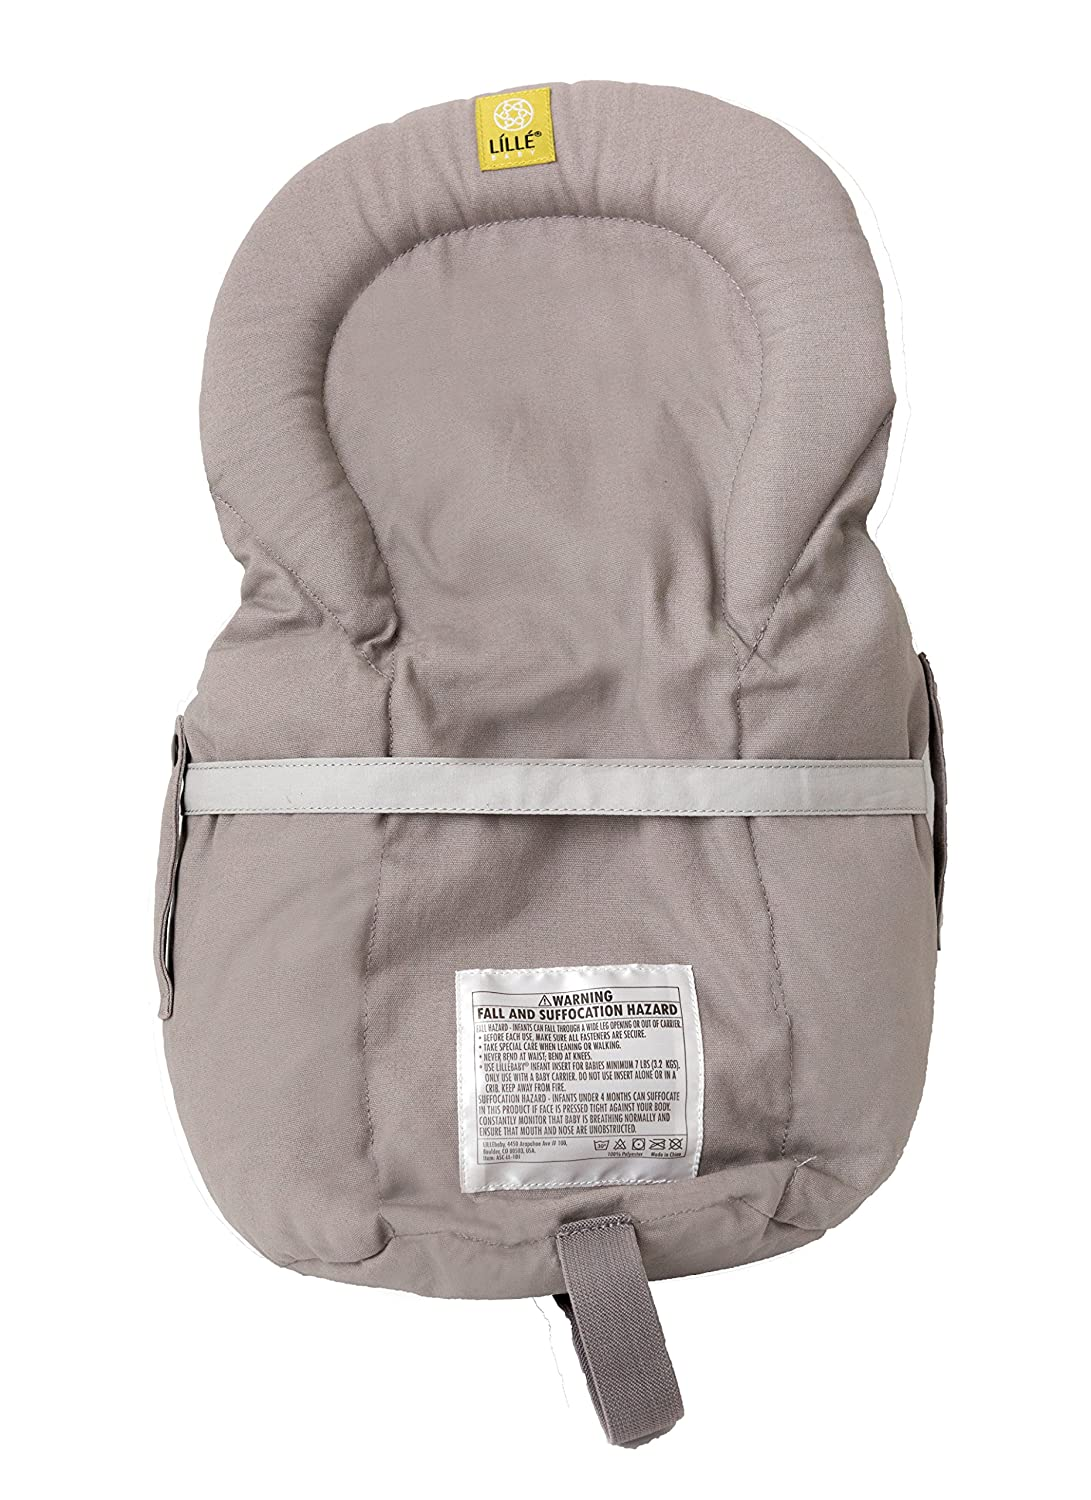 LILLEbaby 6-1 Baby Carrier Infant Insert